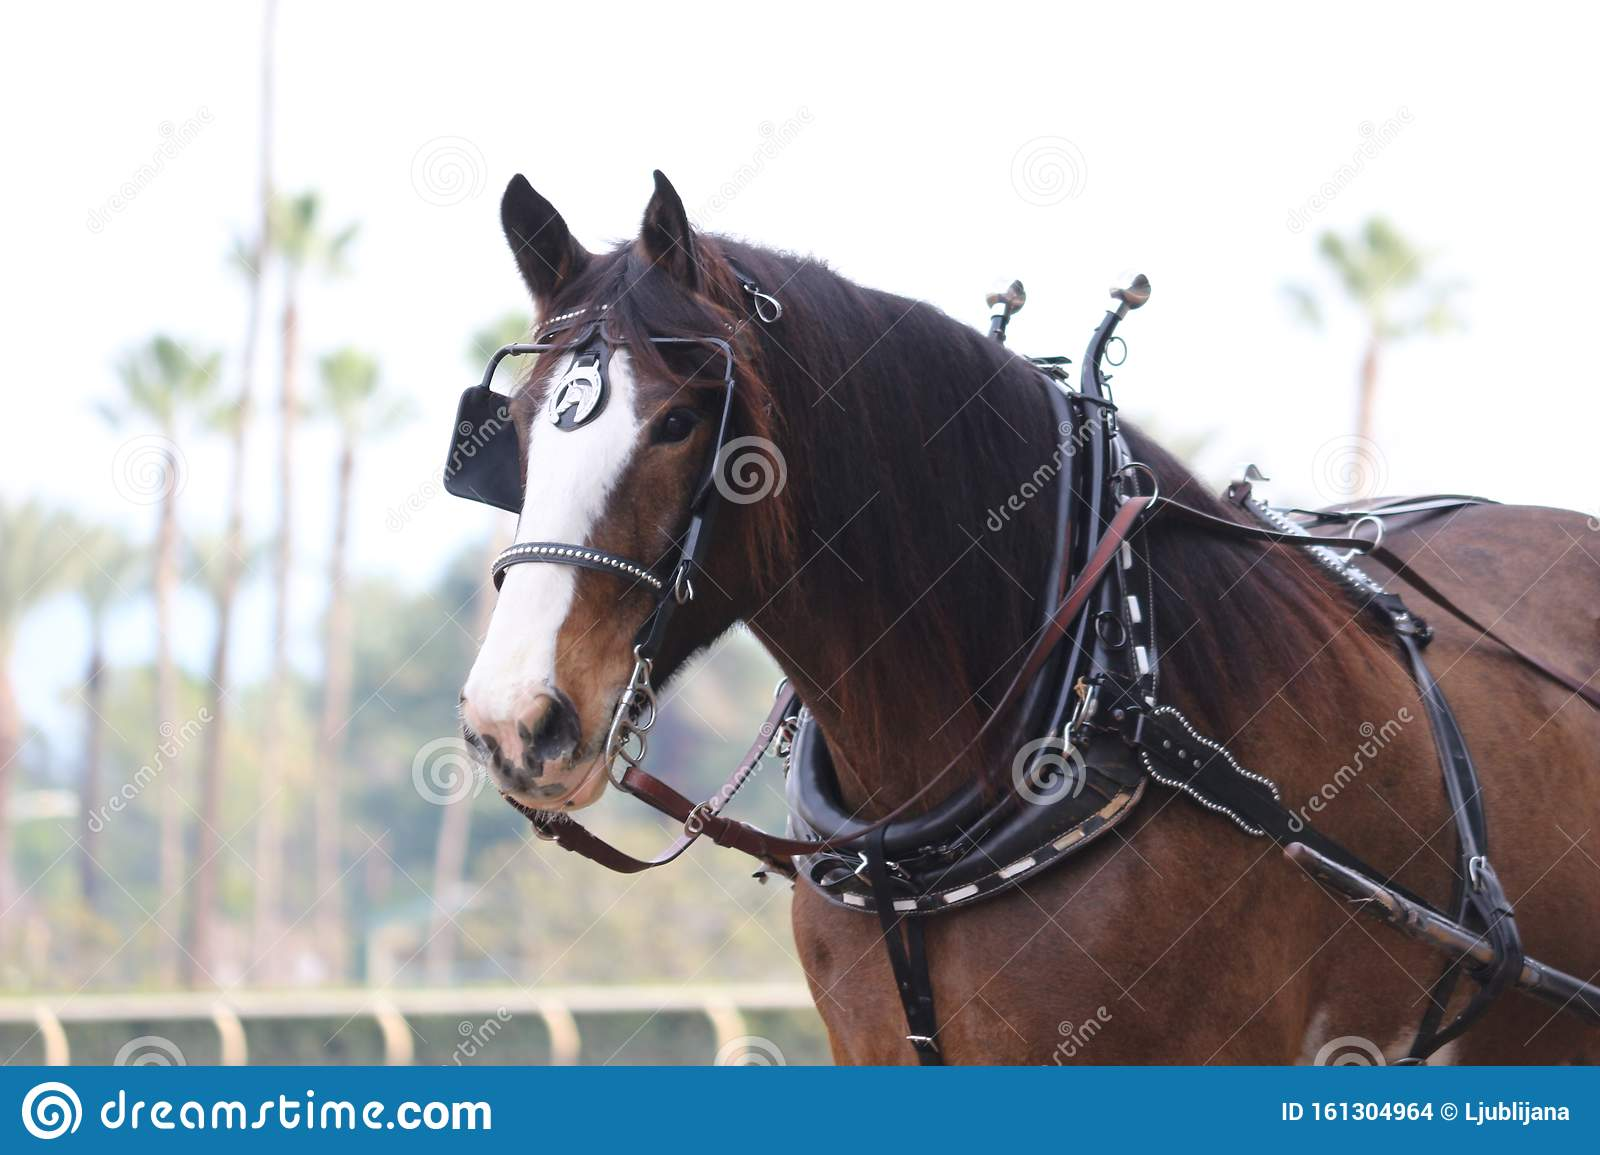 130 Clydesdale Harness Photos Free Royalty Free Stock Photos From Dreamstime